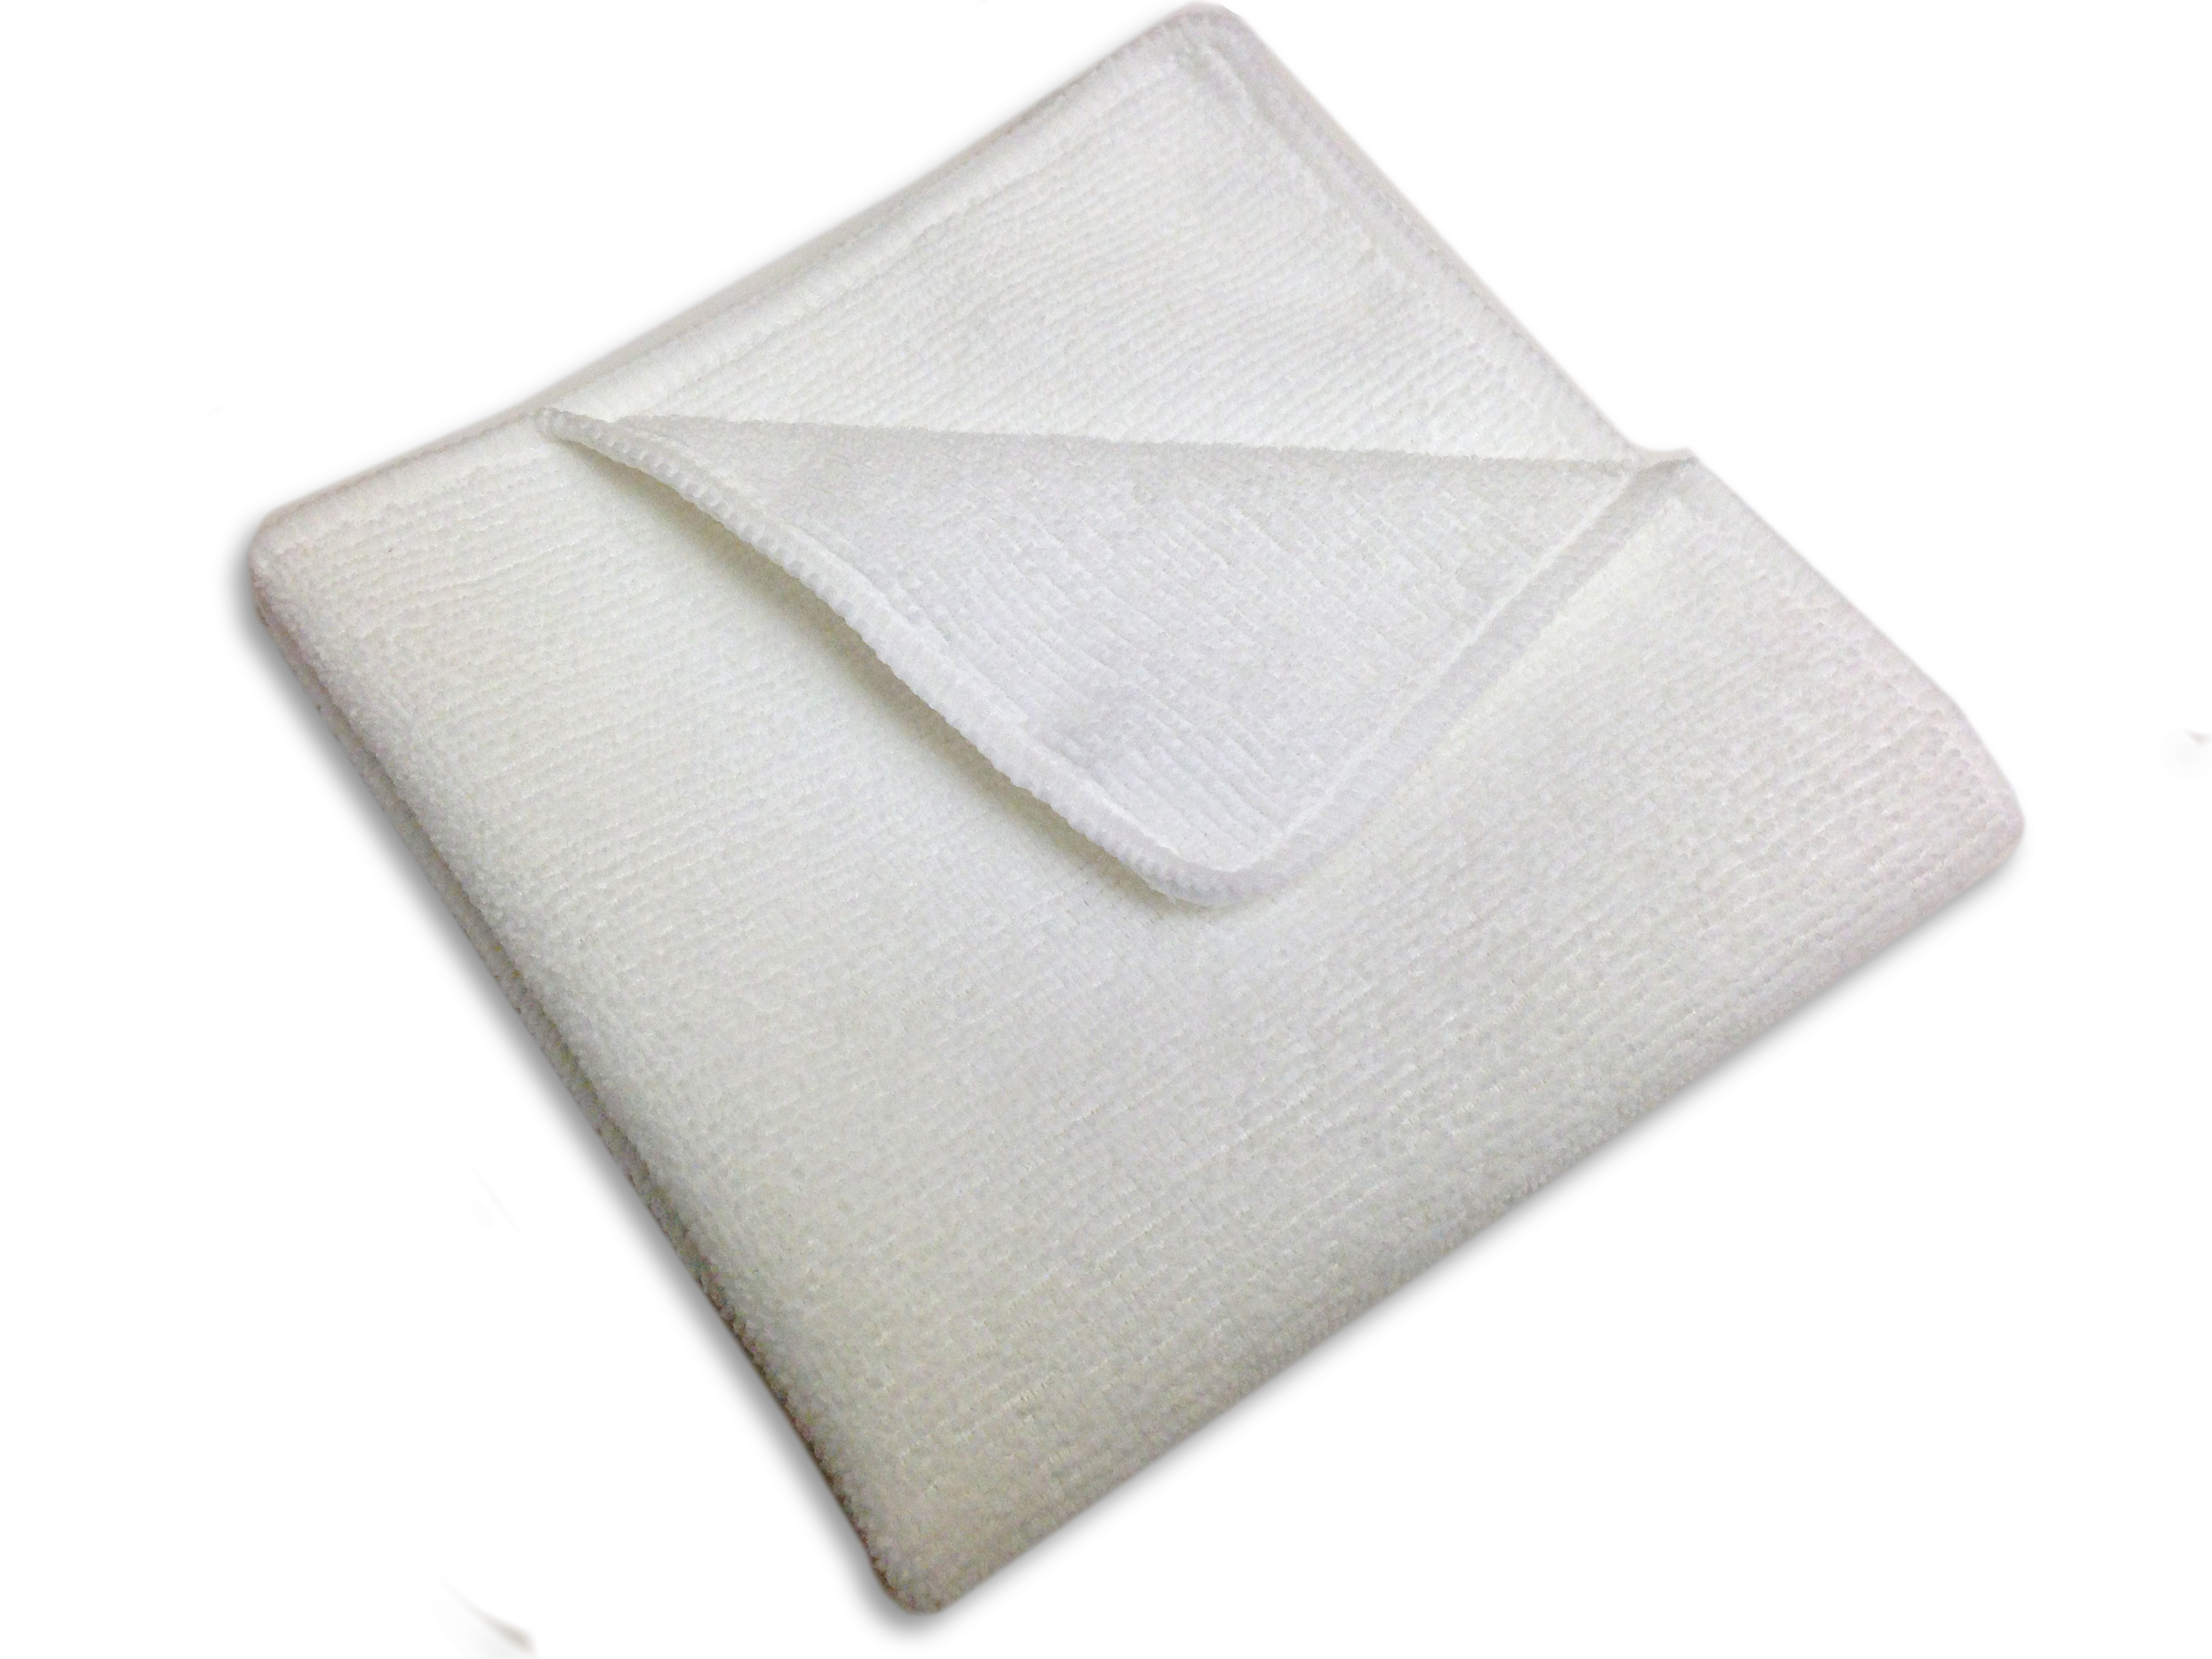 Microfiber Cleaning Cloth 12x12